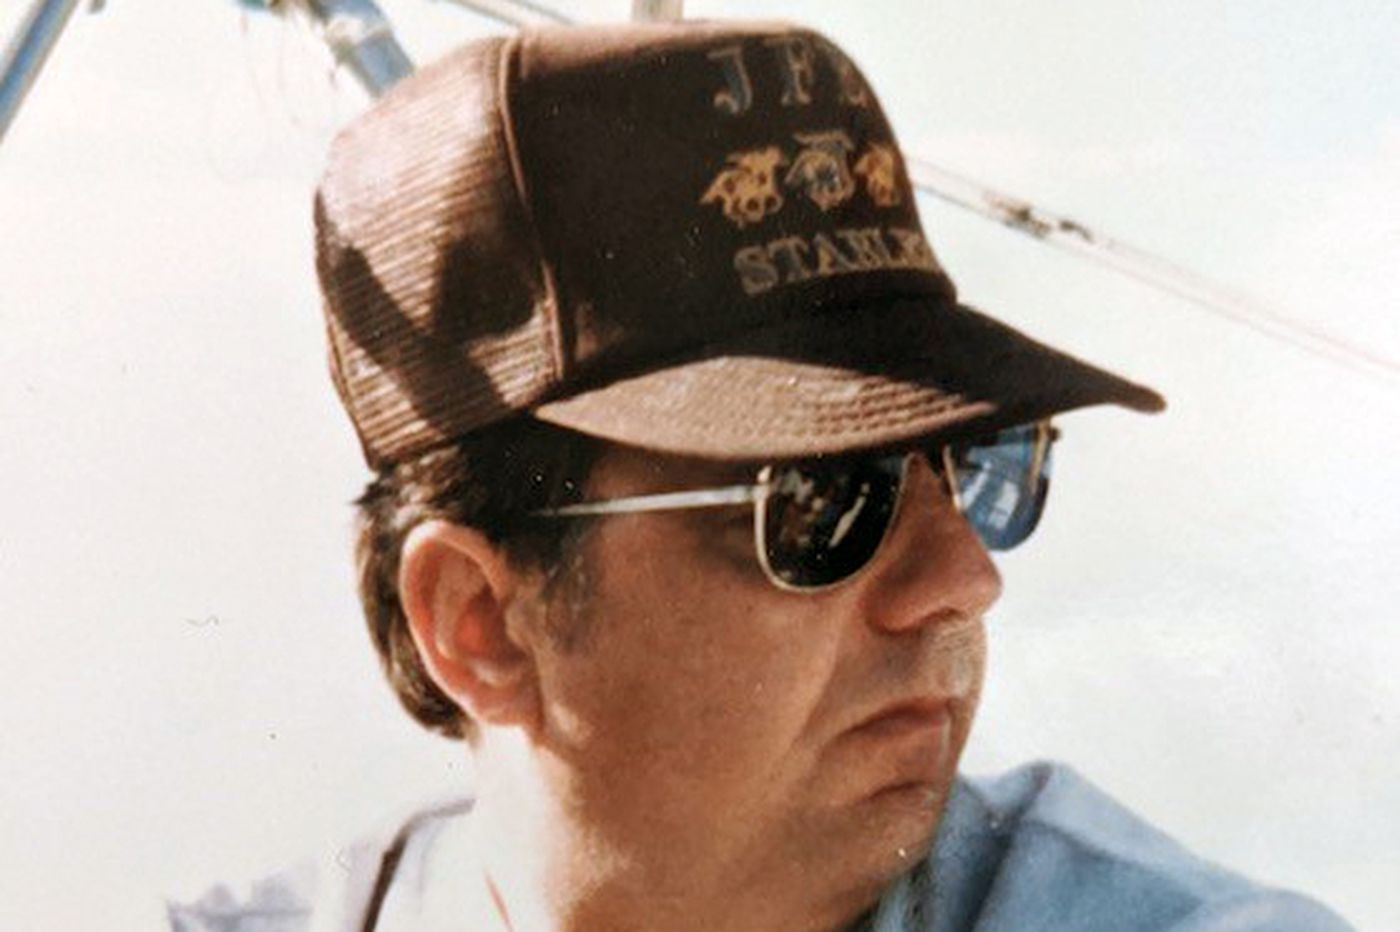 William Prickett, of Delaware, was a successful thoroughbred horse trainer from 1960s through 1980s